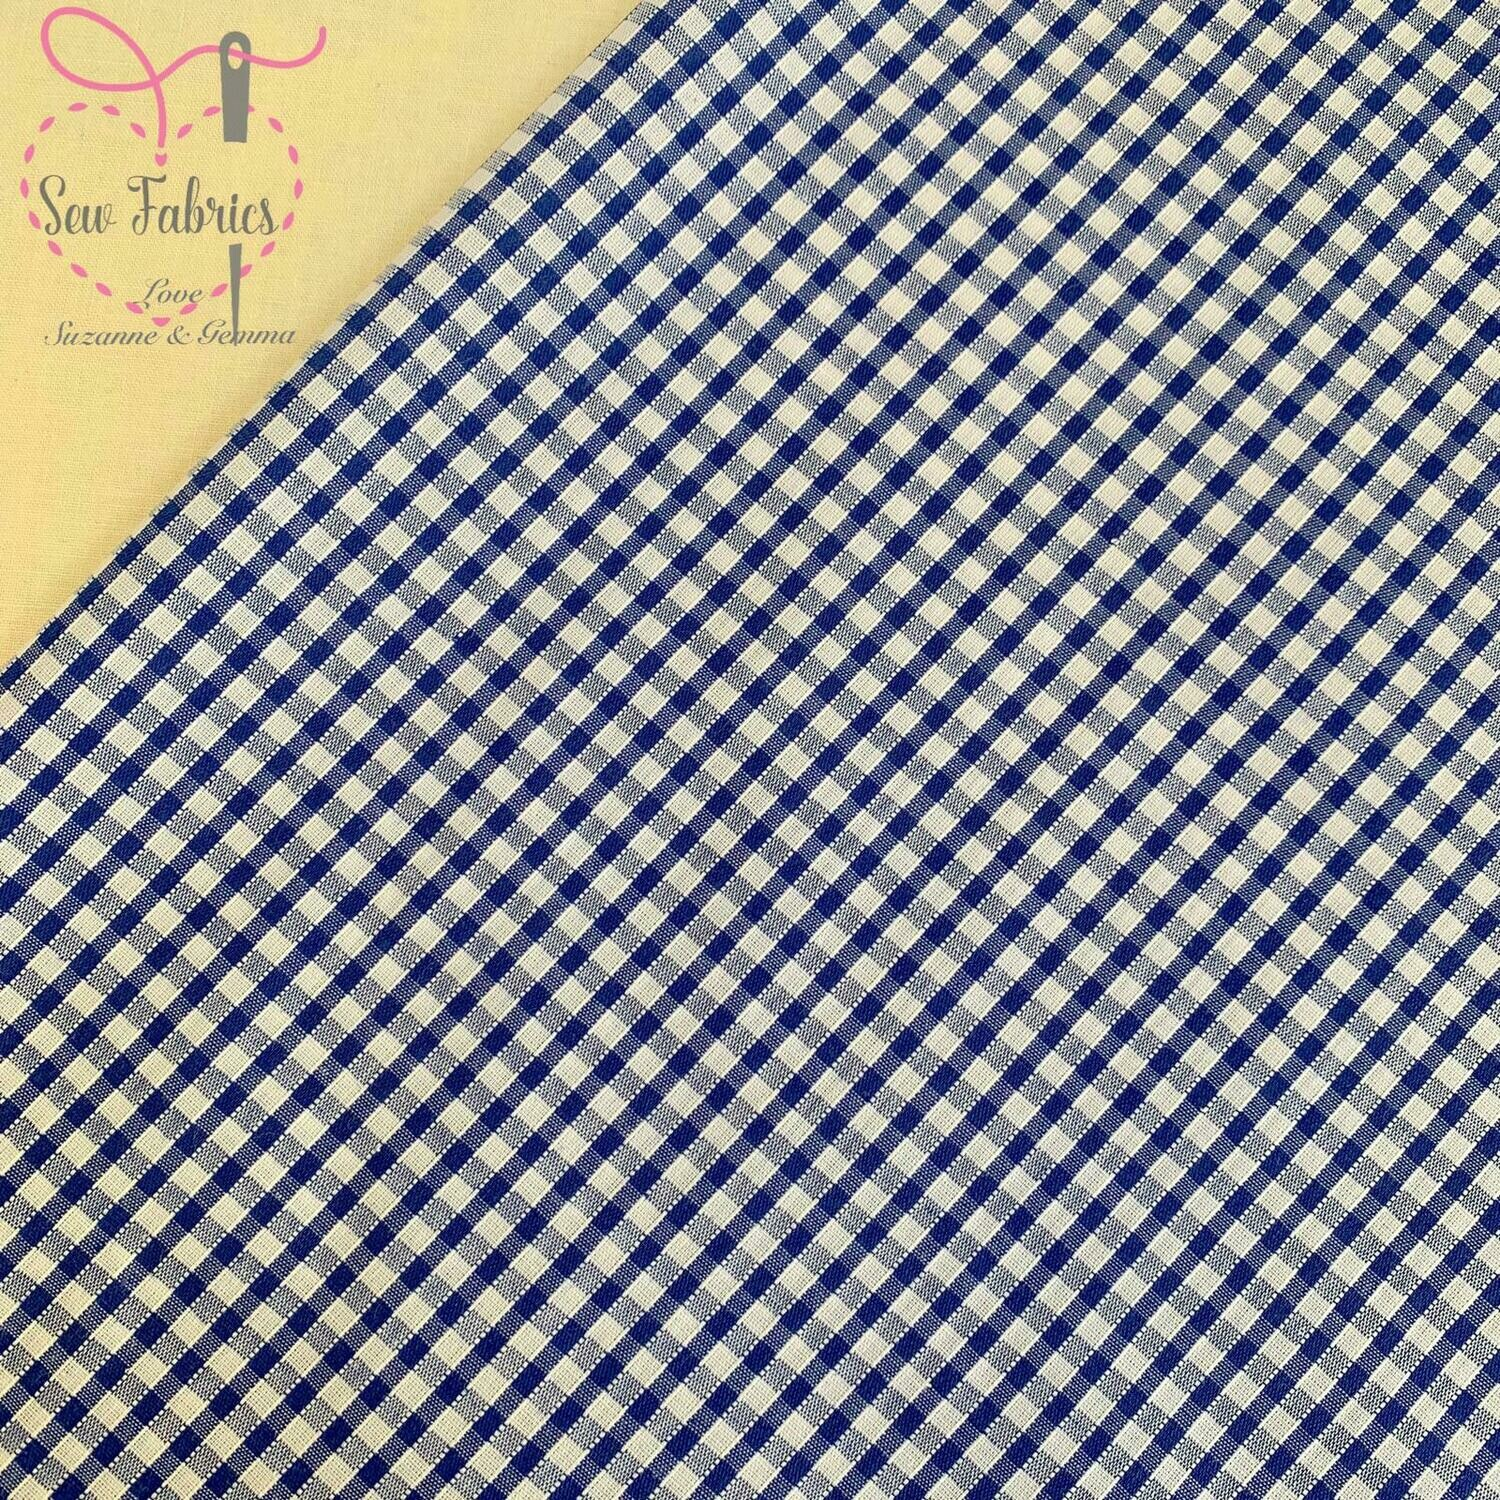 Classic Bottle Green Gingham Print Polycotton Fabric, School Colour Material For Craft & Sewing Projects